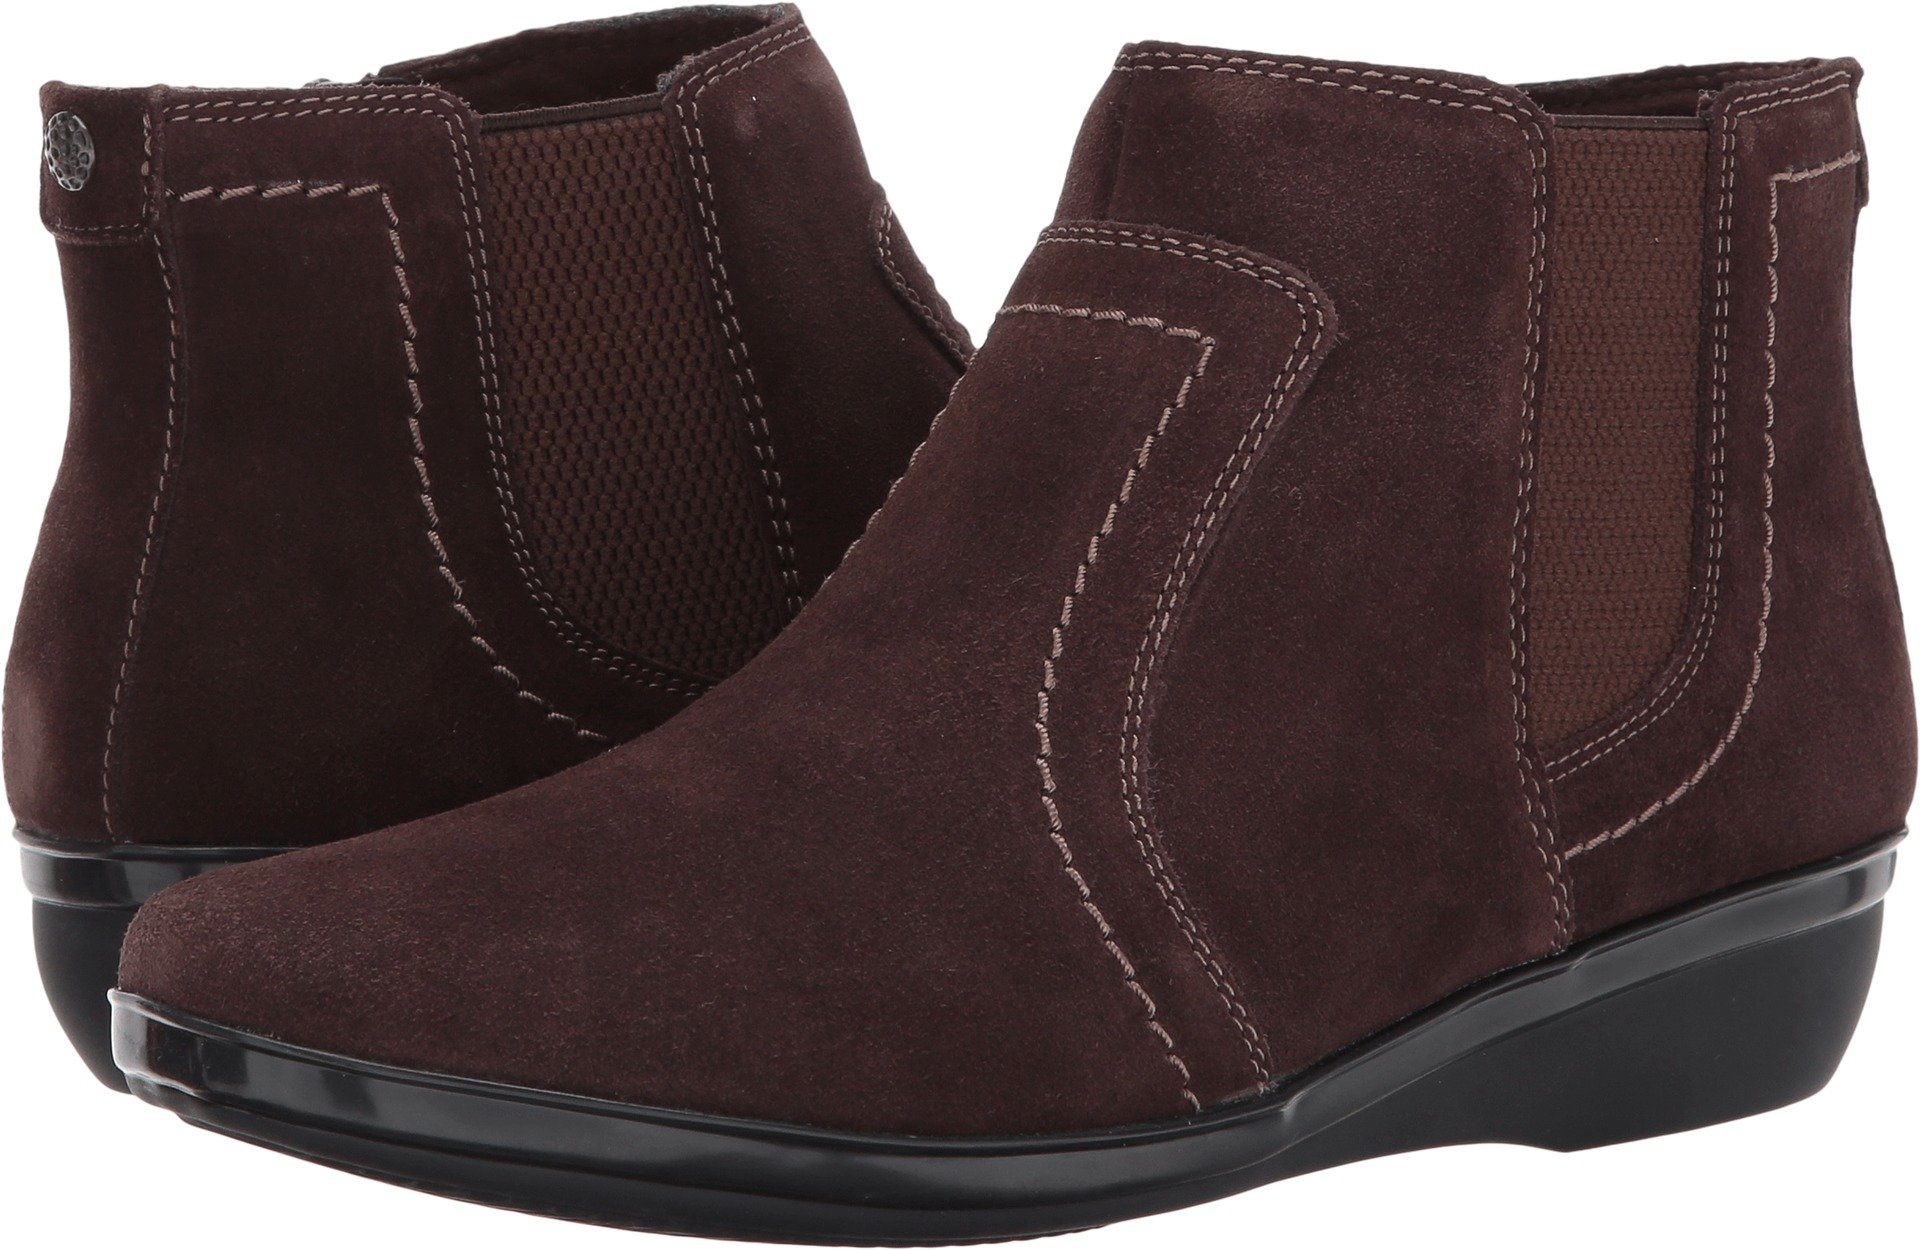 CLARKS Womens Everlay Leigh Low Boot, Size: 7 C/D US, Color Dark Brown Suede